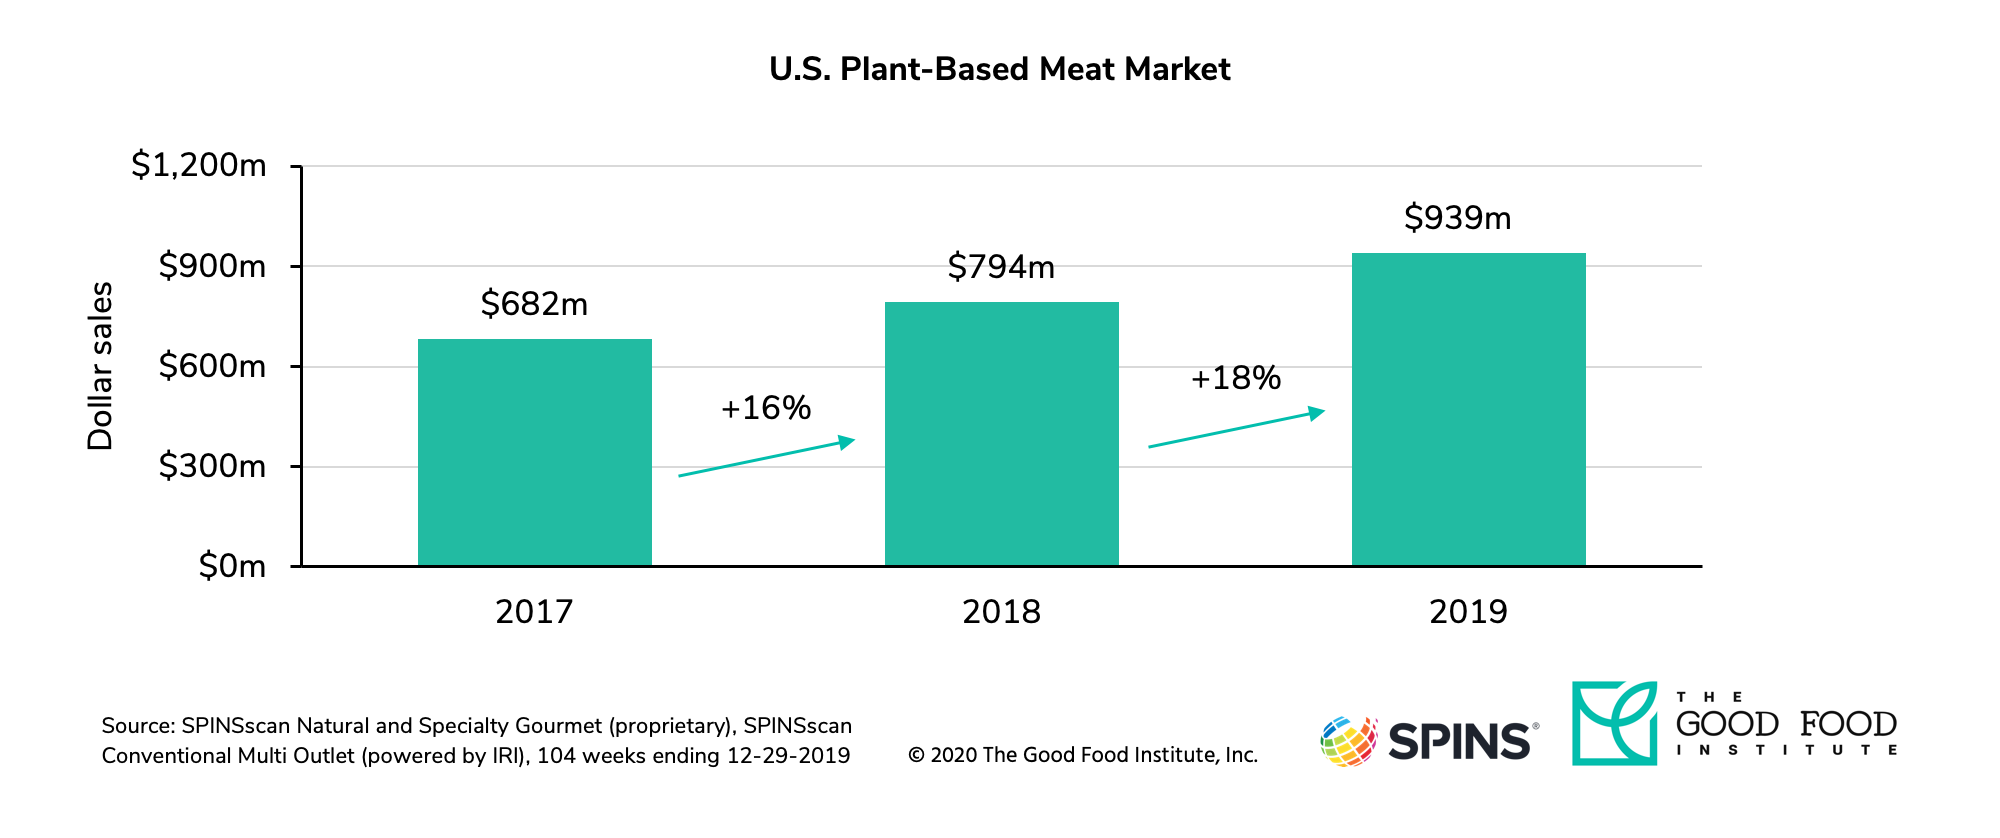 Plant-based meat sales in U.S. retail increased 38 percent from 2017 to 2019.